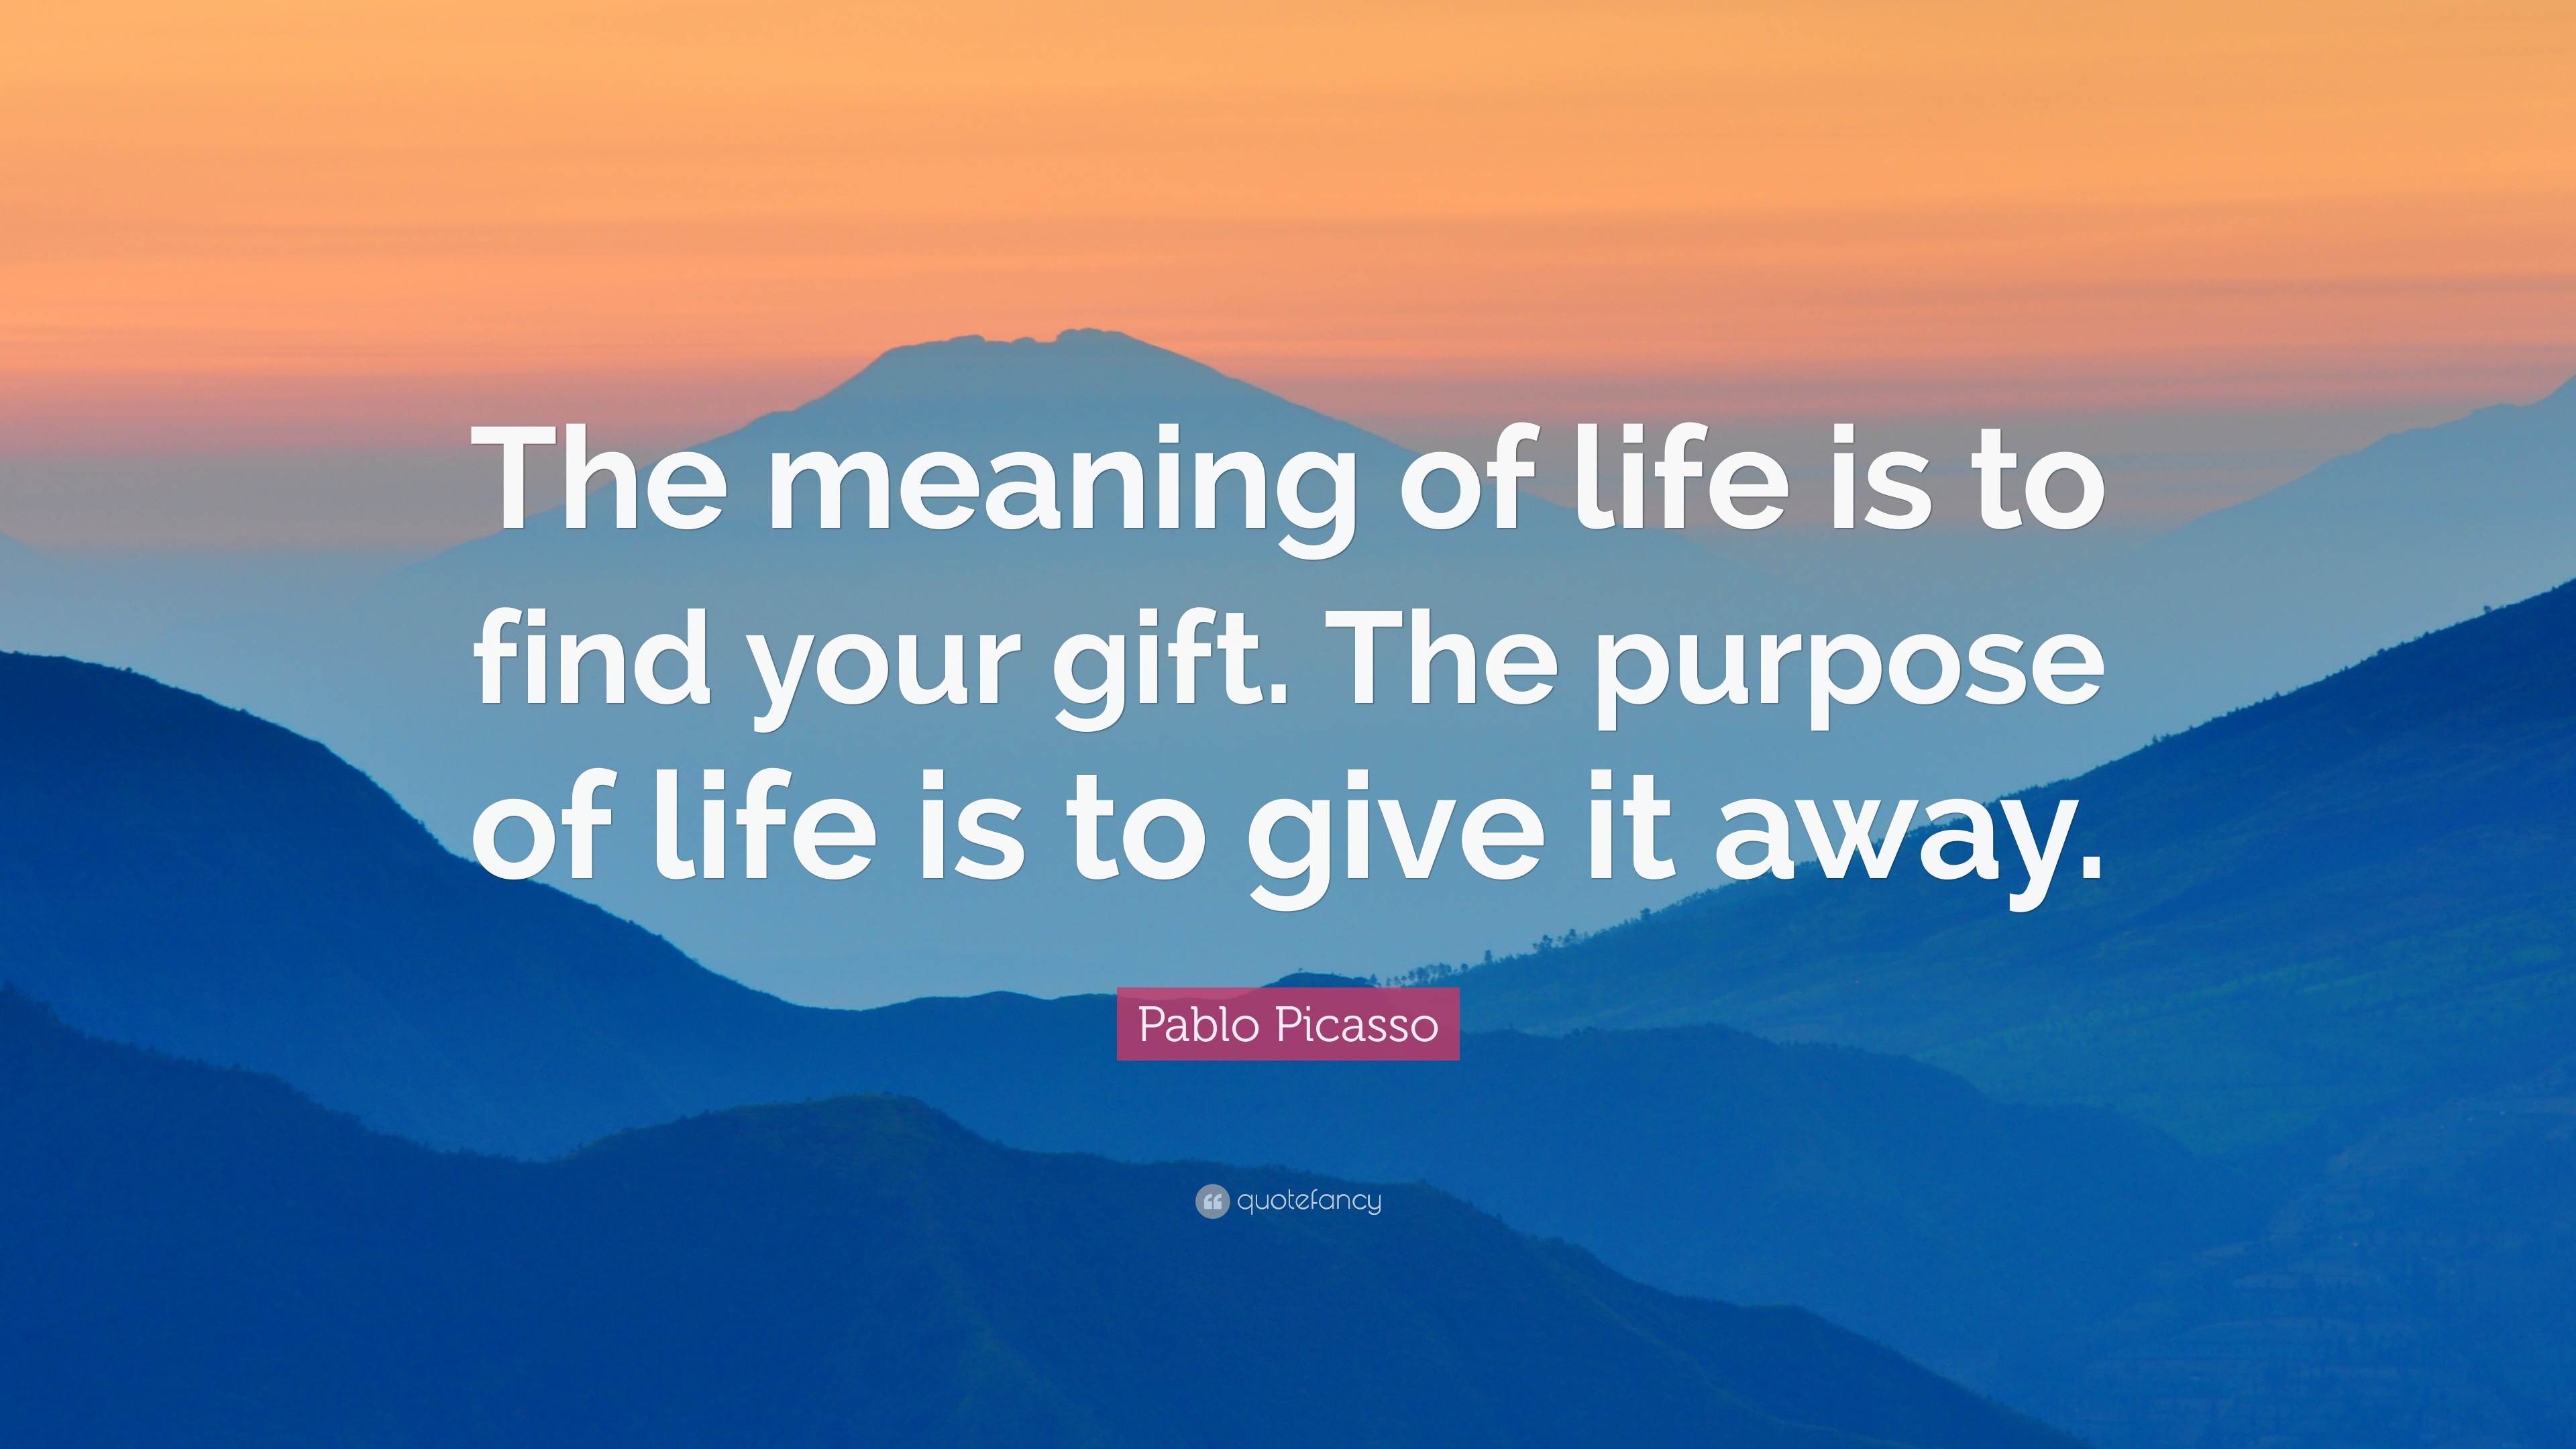 Pablo Picasso Quote The Meaning Of Life Is To Find Your Gift The